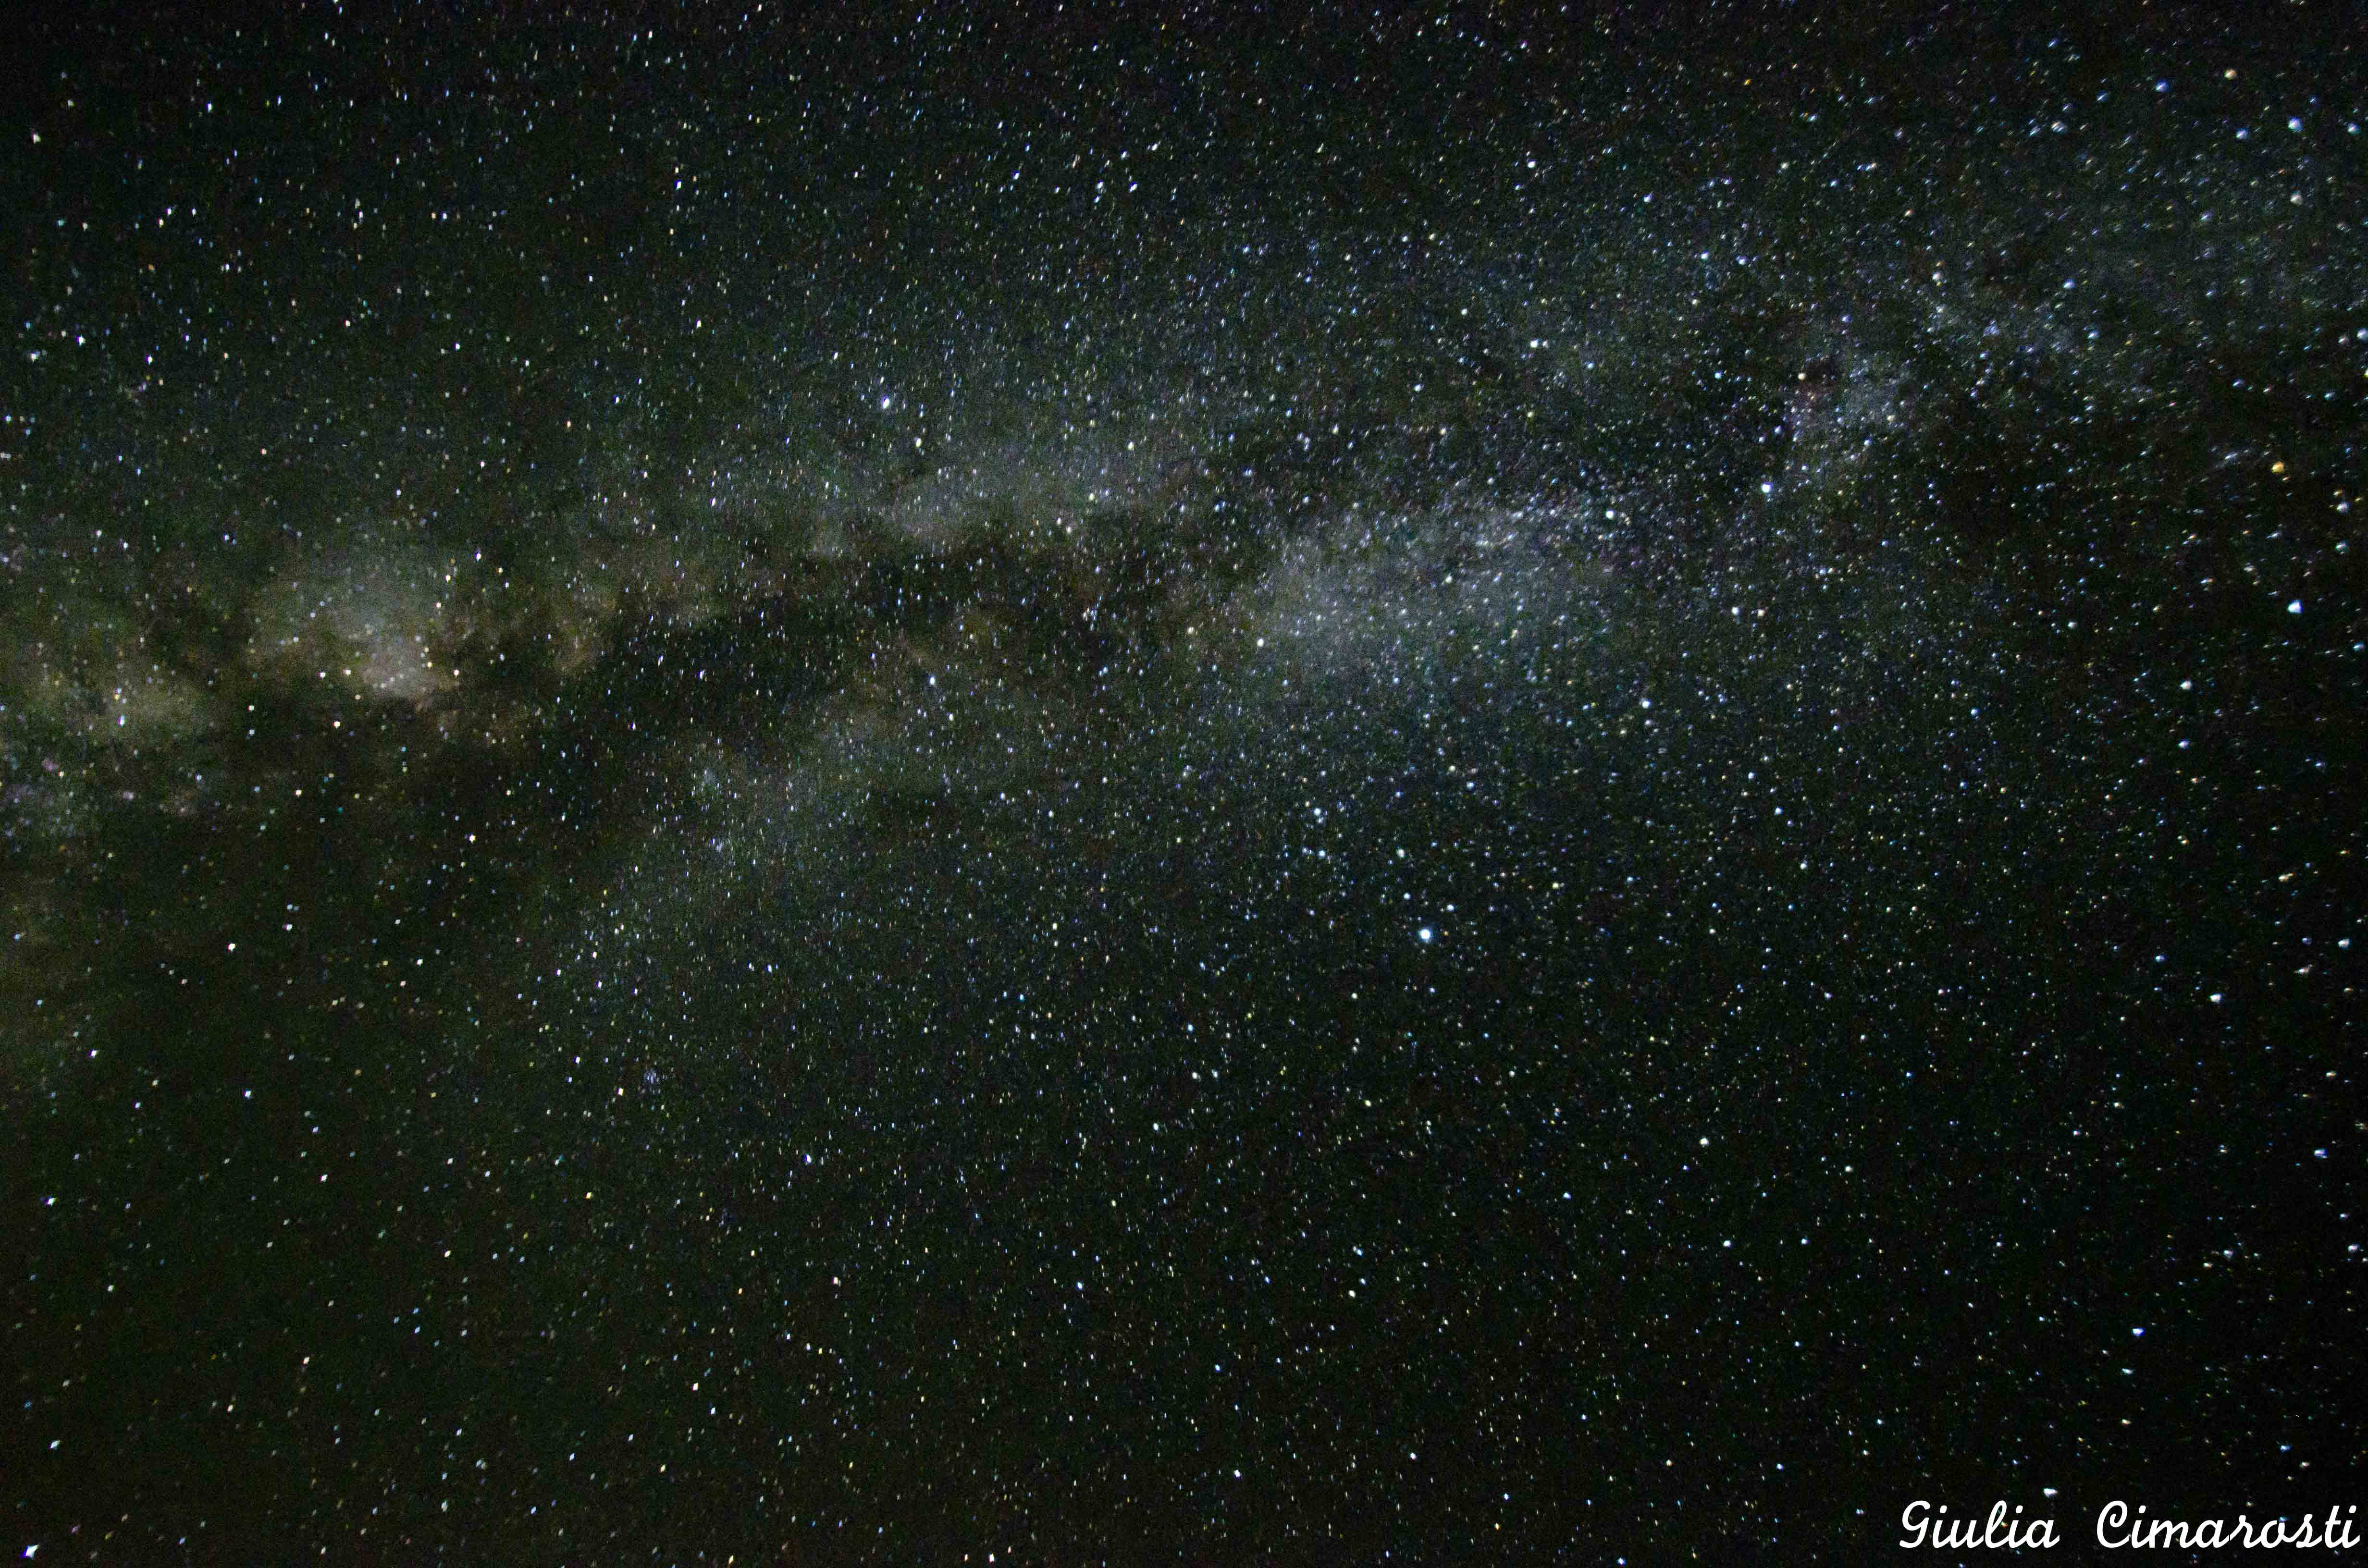 The Milky Way is my muse